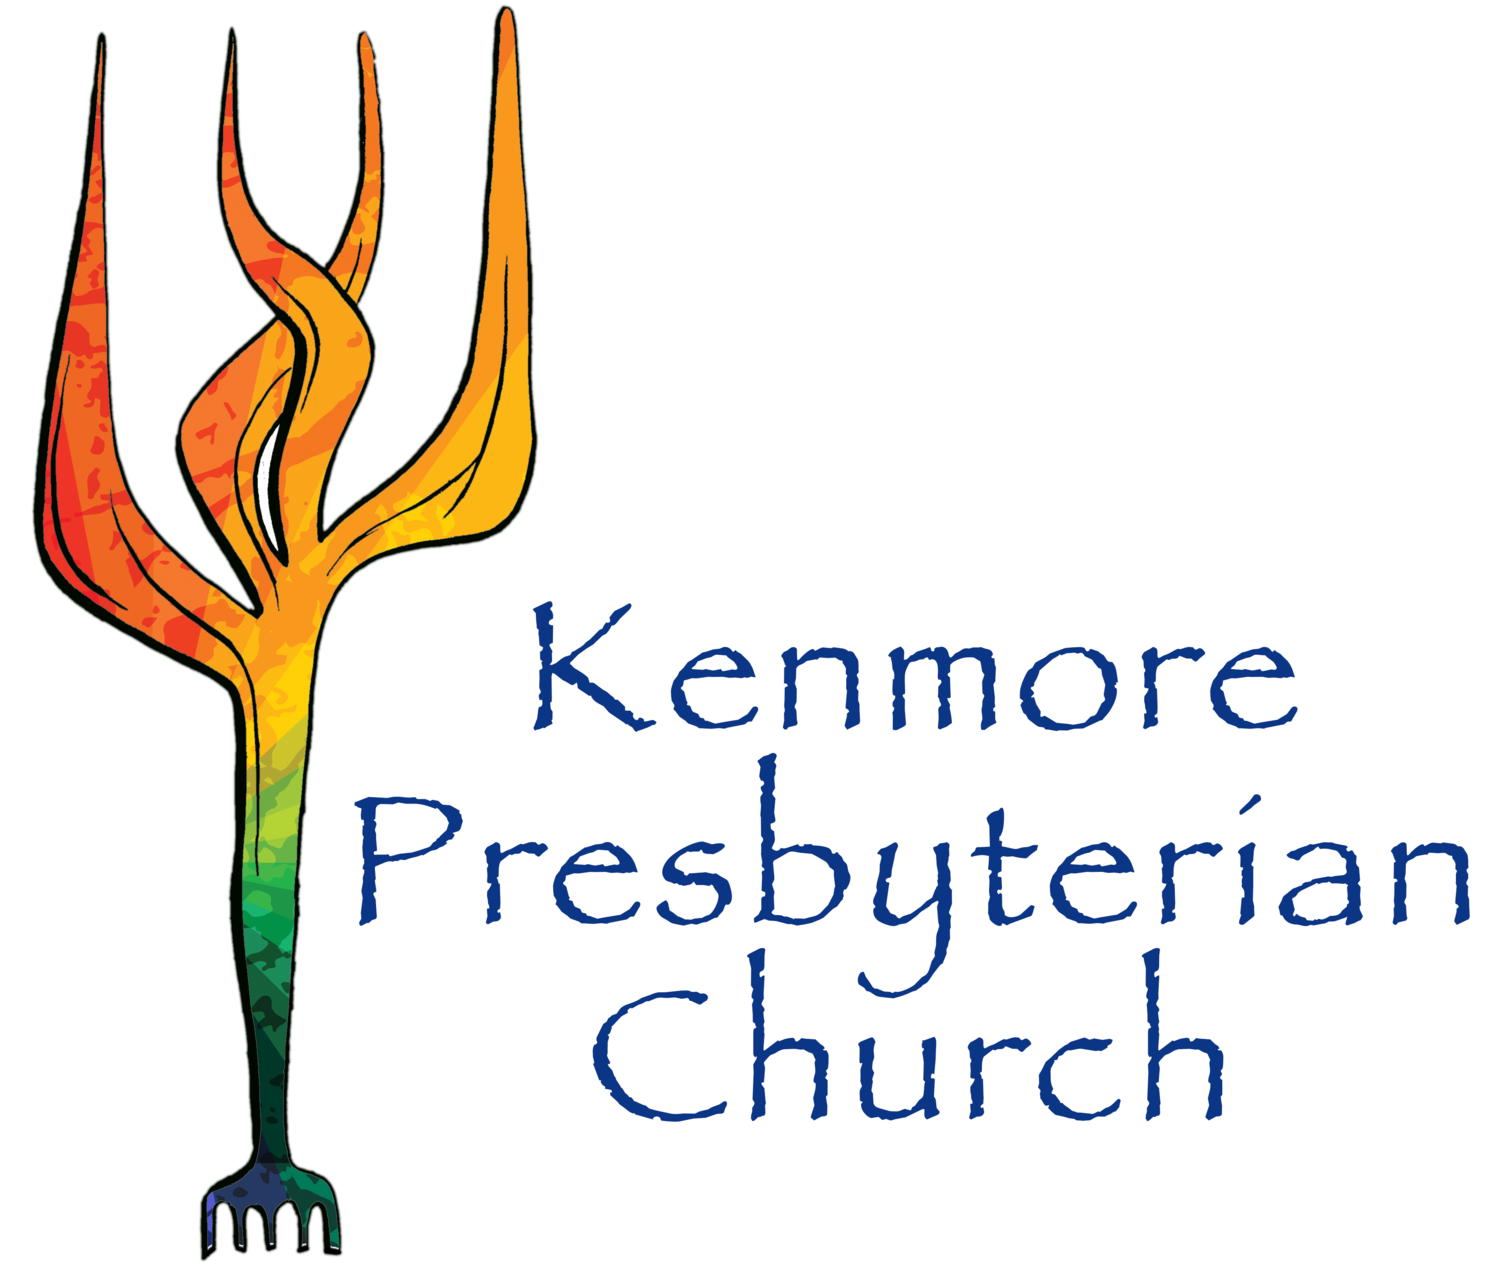 Kenmore Presbyterian Church